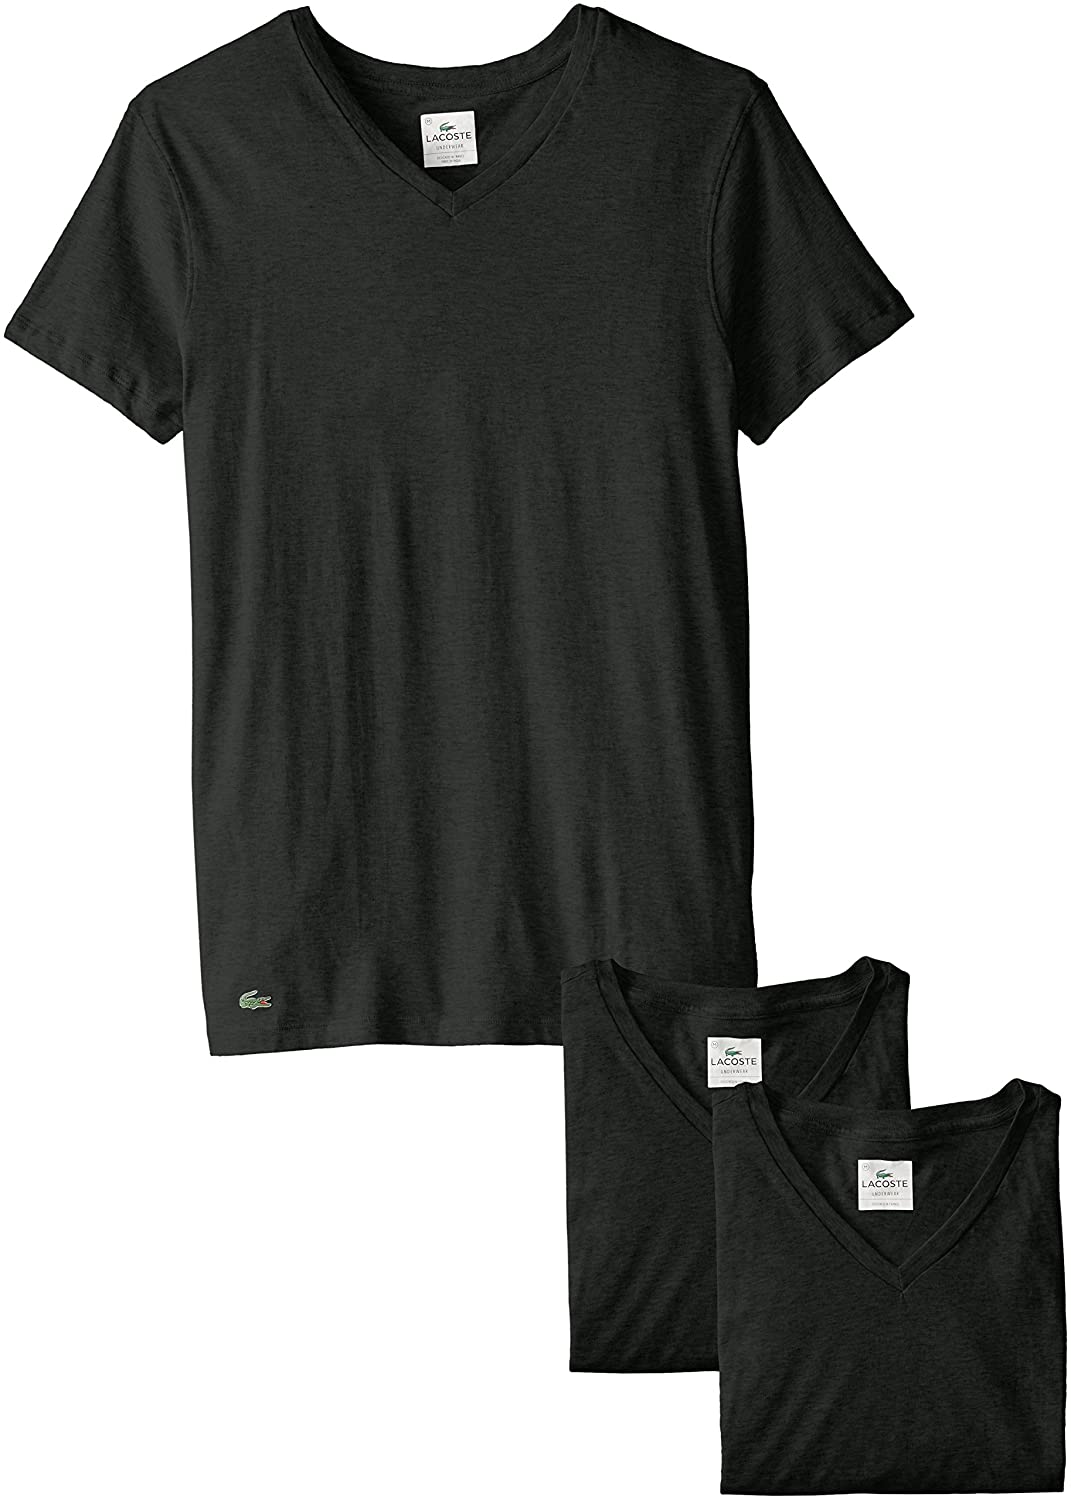 2c3f91078a88 Lacoste Men's 3-Pack Essentials Cotton V-Neck T-Shirt: Amazon.ca: Clothing  & Accessories